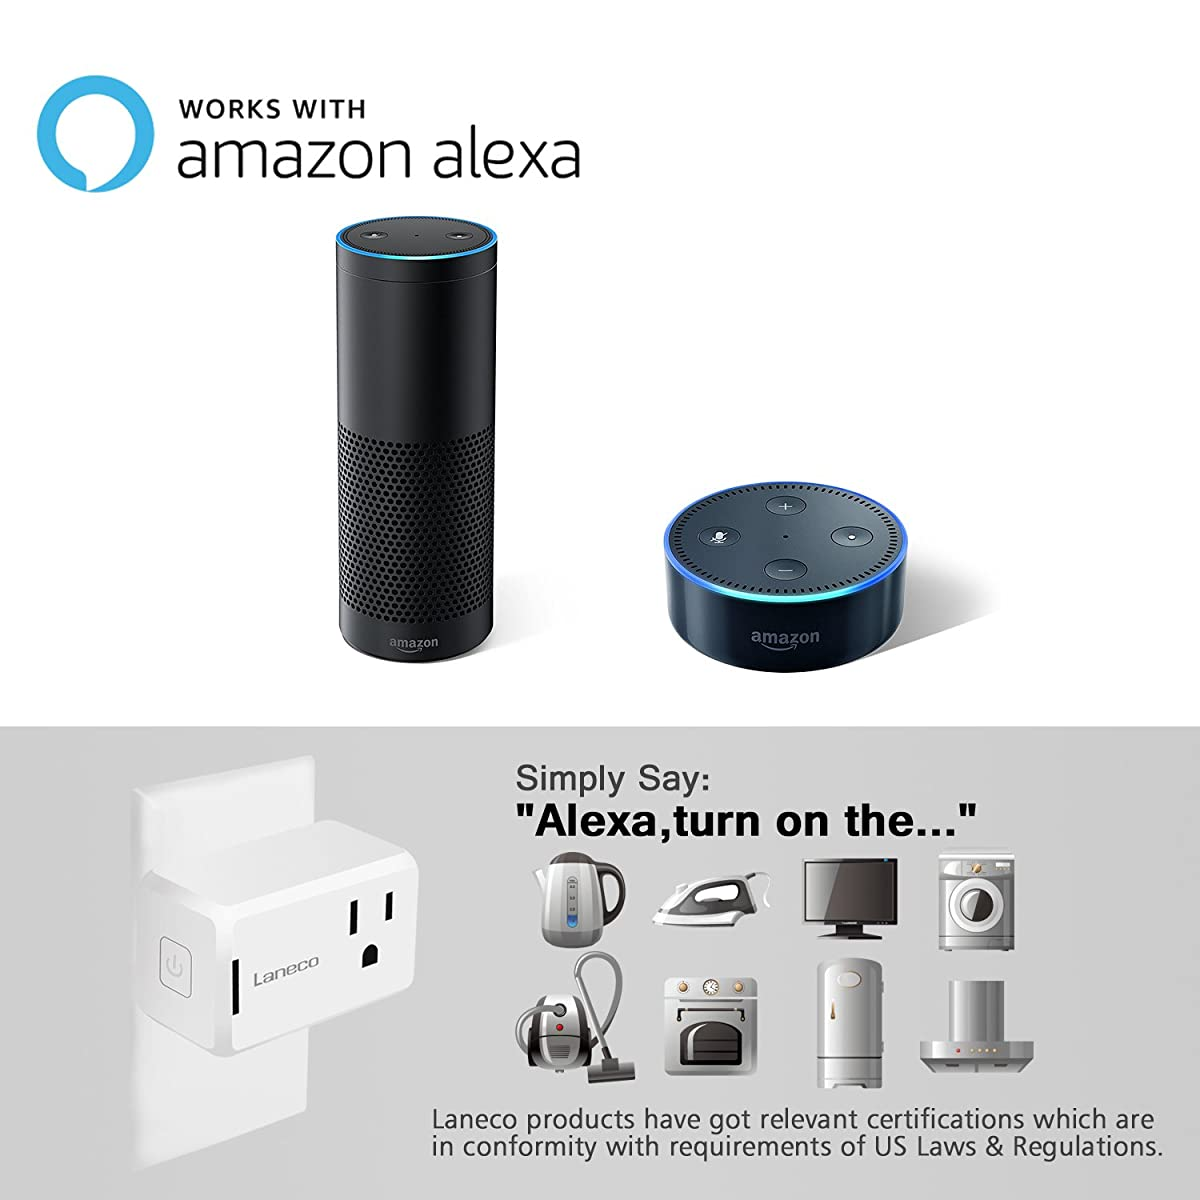 WiFi Smart Plug (2 Pack), Laneco Mini Wireless smart socket Outlet with Timing Function, Control Your Devices from Anywhere Via Free APP, Works with Amazon Alexa, No Hub Required